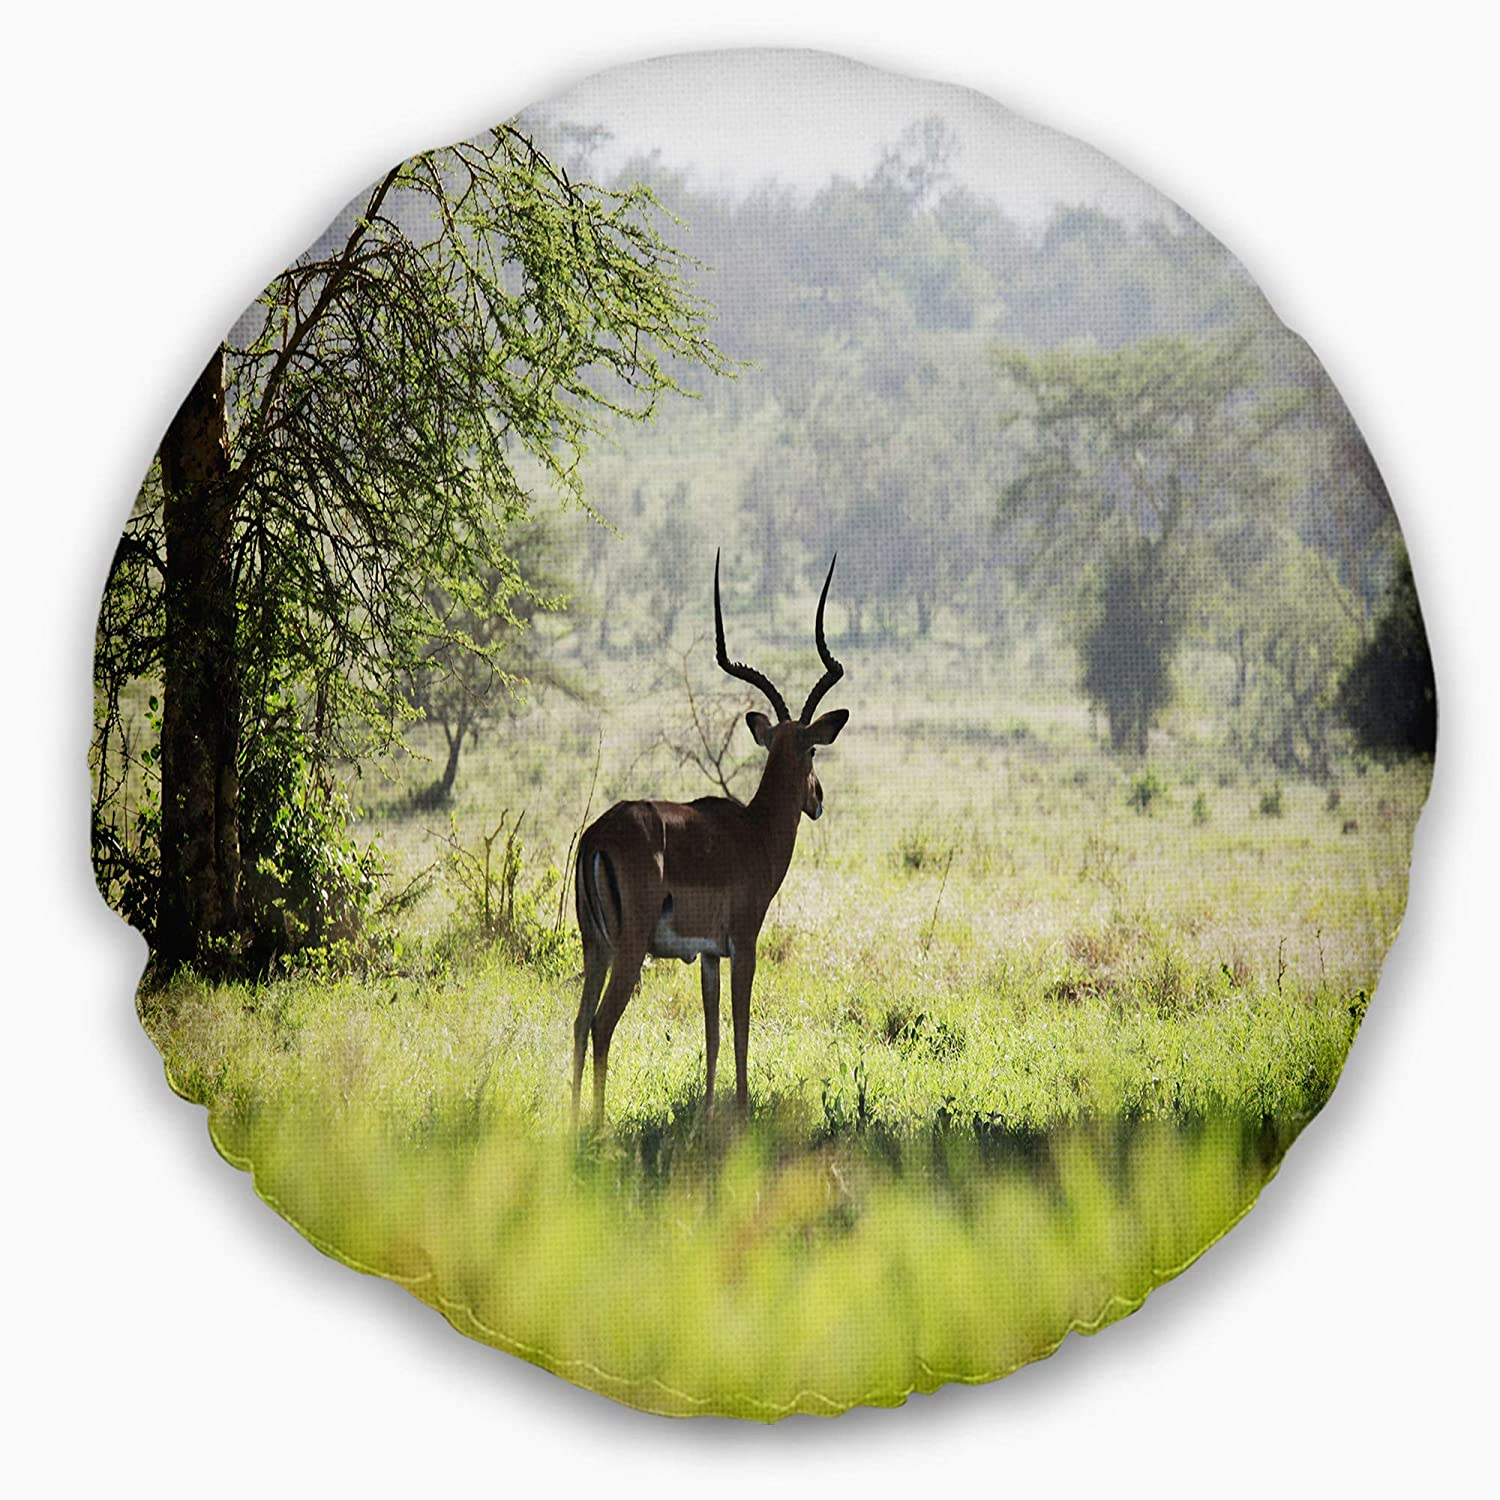 Designart CU12678-20-20-C Solitary Antelope in Green Park African Landscape Printed Round Cushion Cover for Living Room Sofa Throw Pillow 20 Insert Side